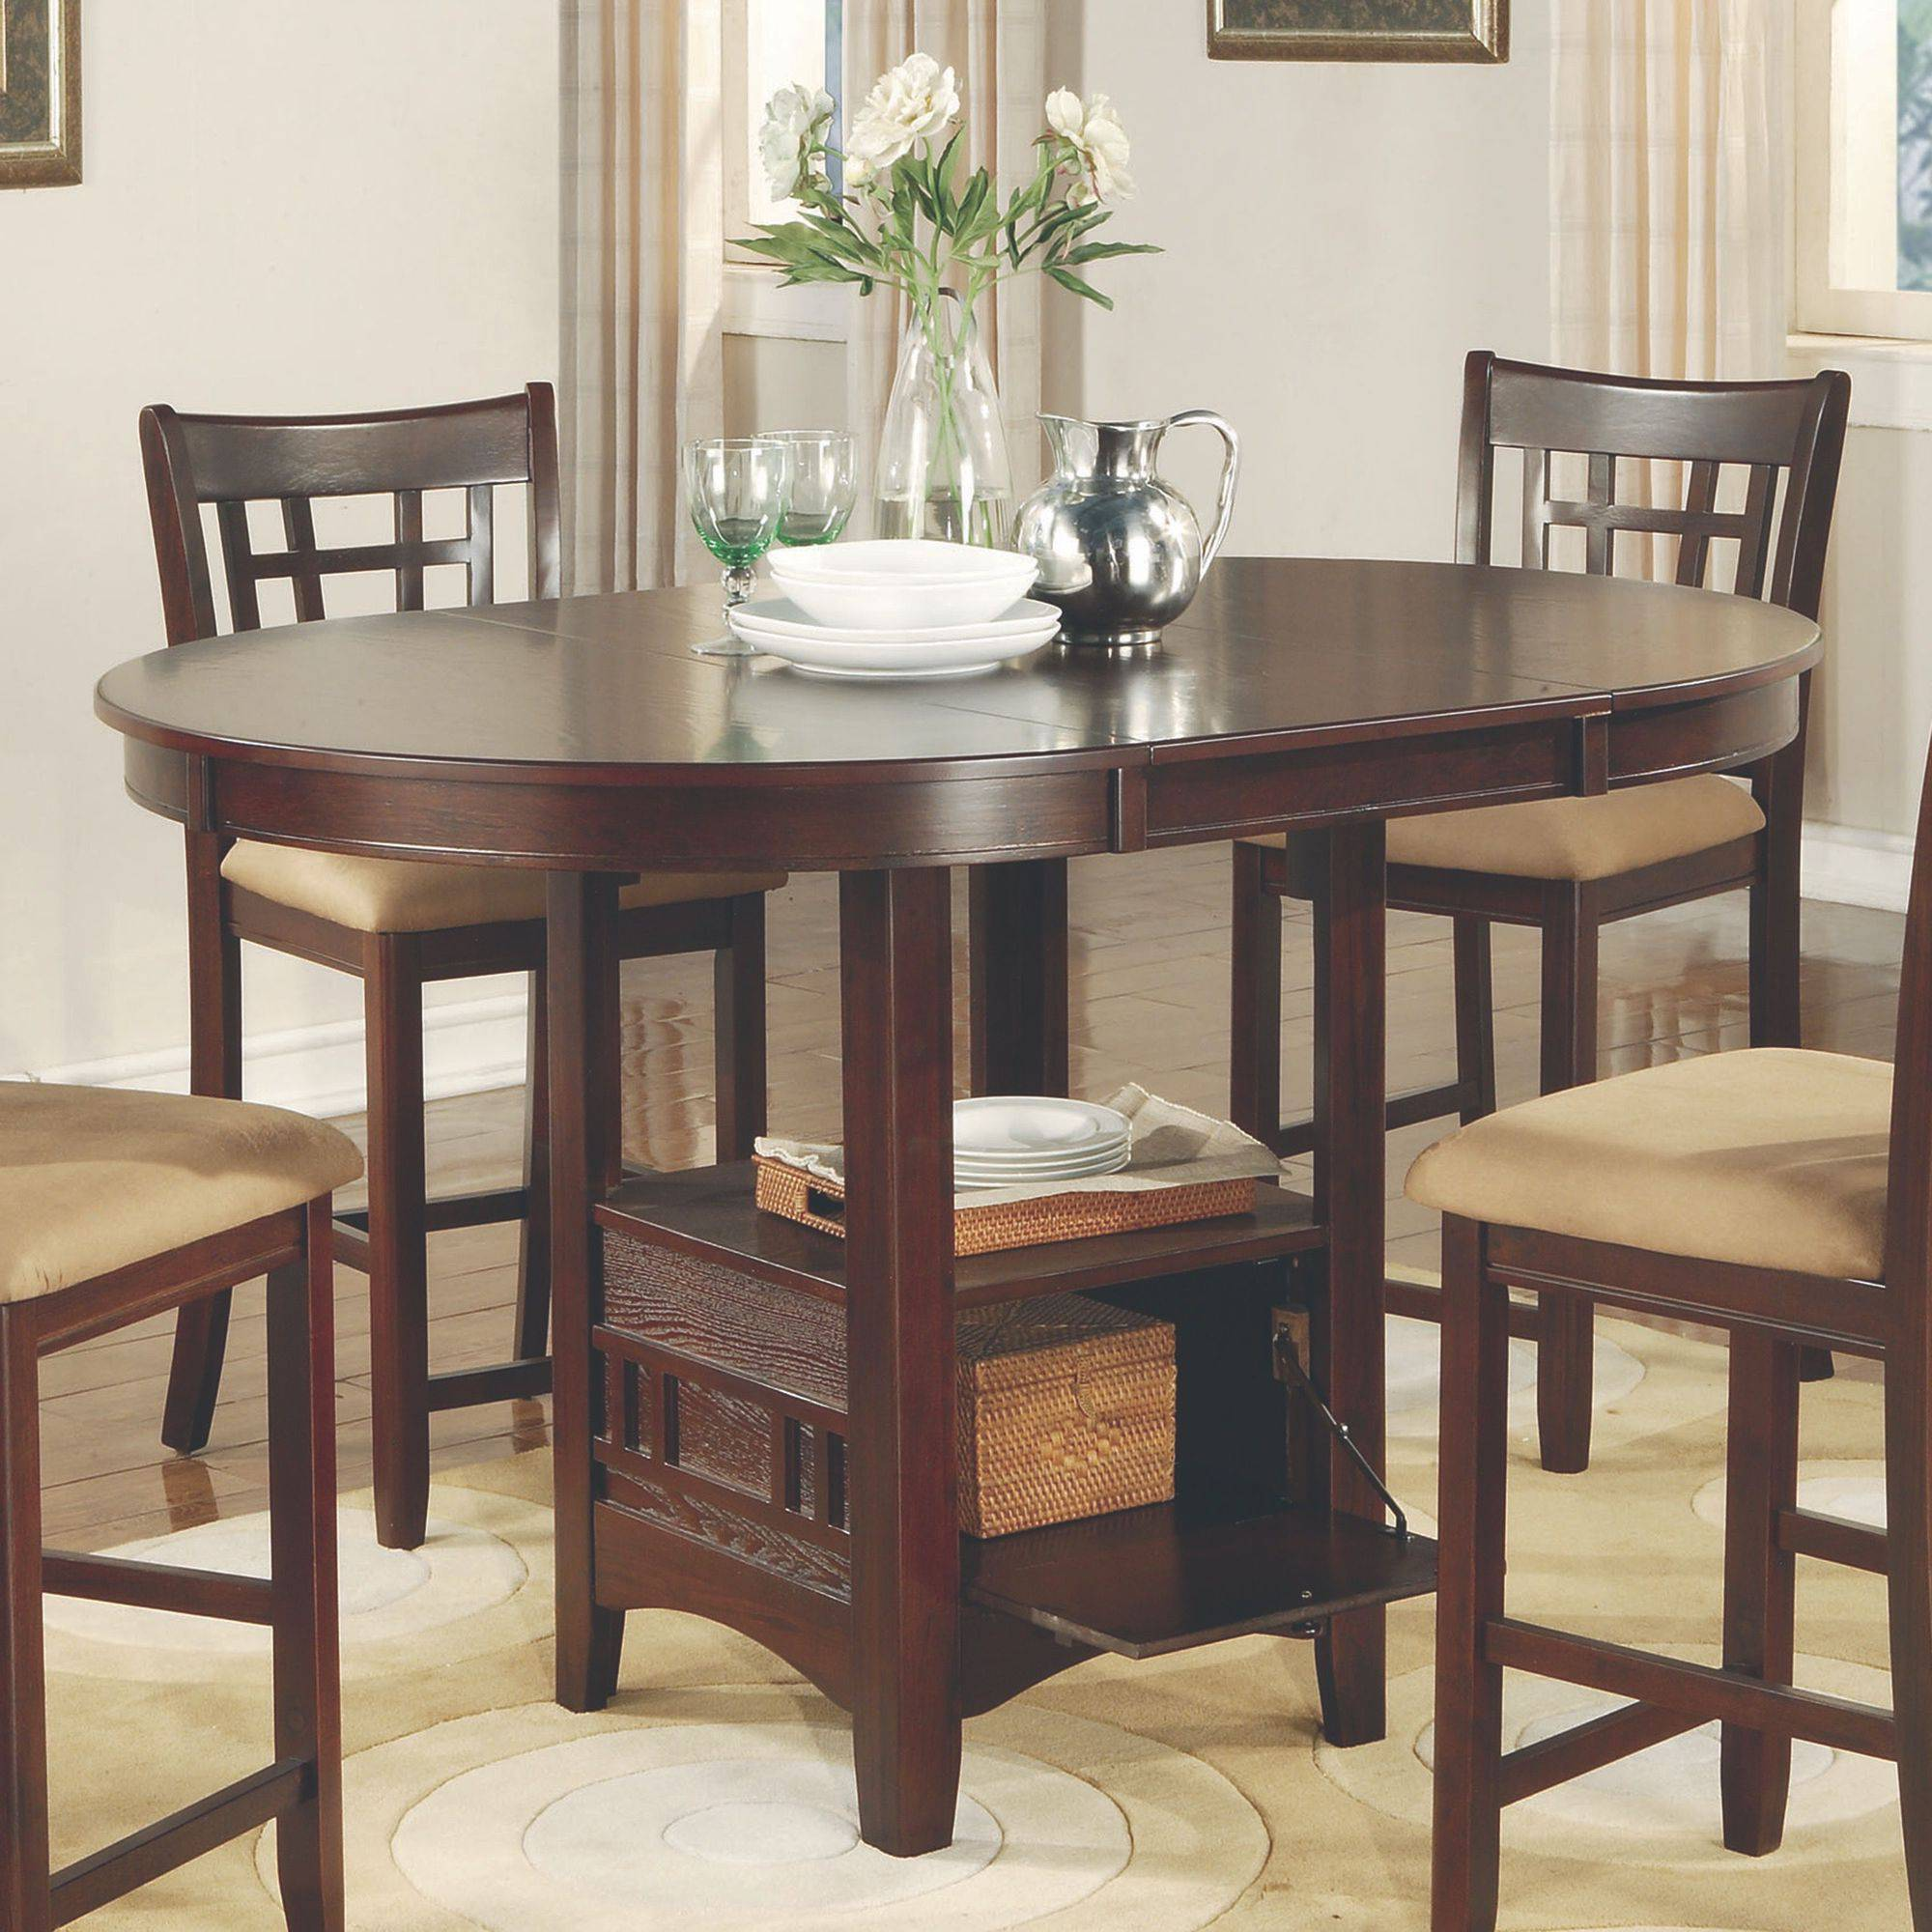 Captivating Homelegance Broome 7 Piece Counter Height Expandable Storage Dining Table  Set   Dark Brown   Walmart.com